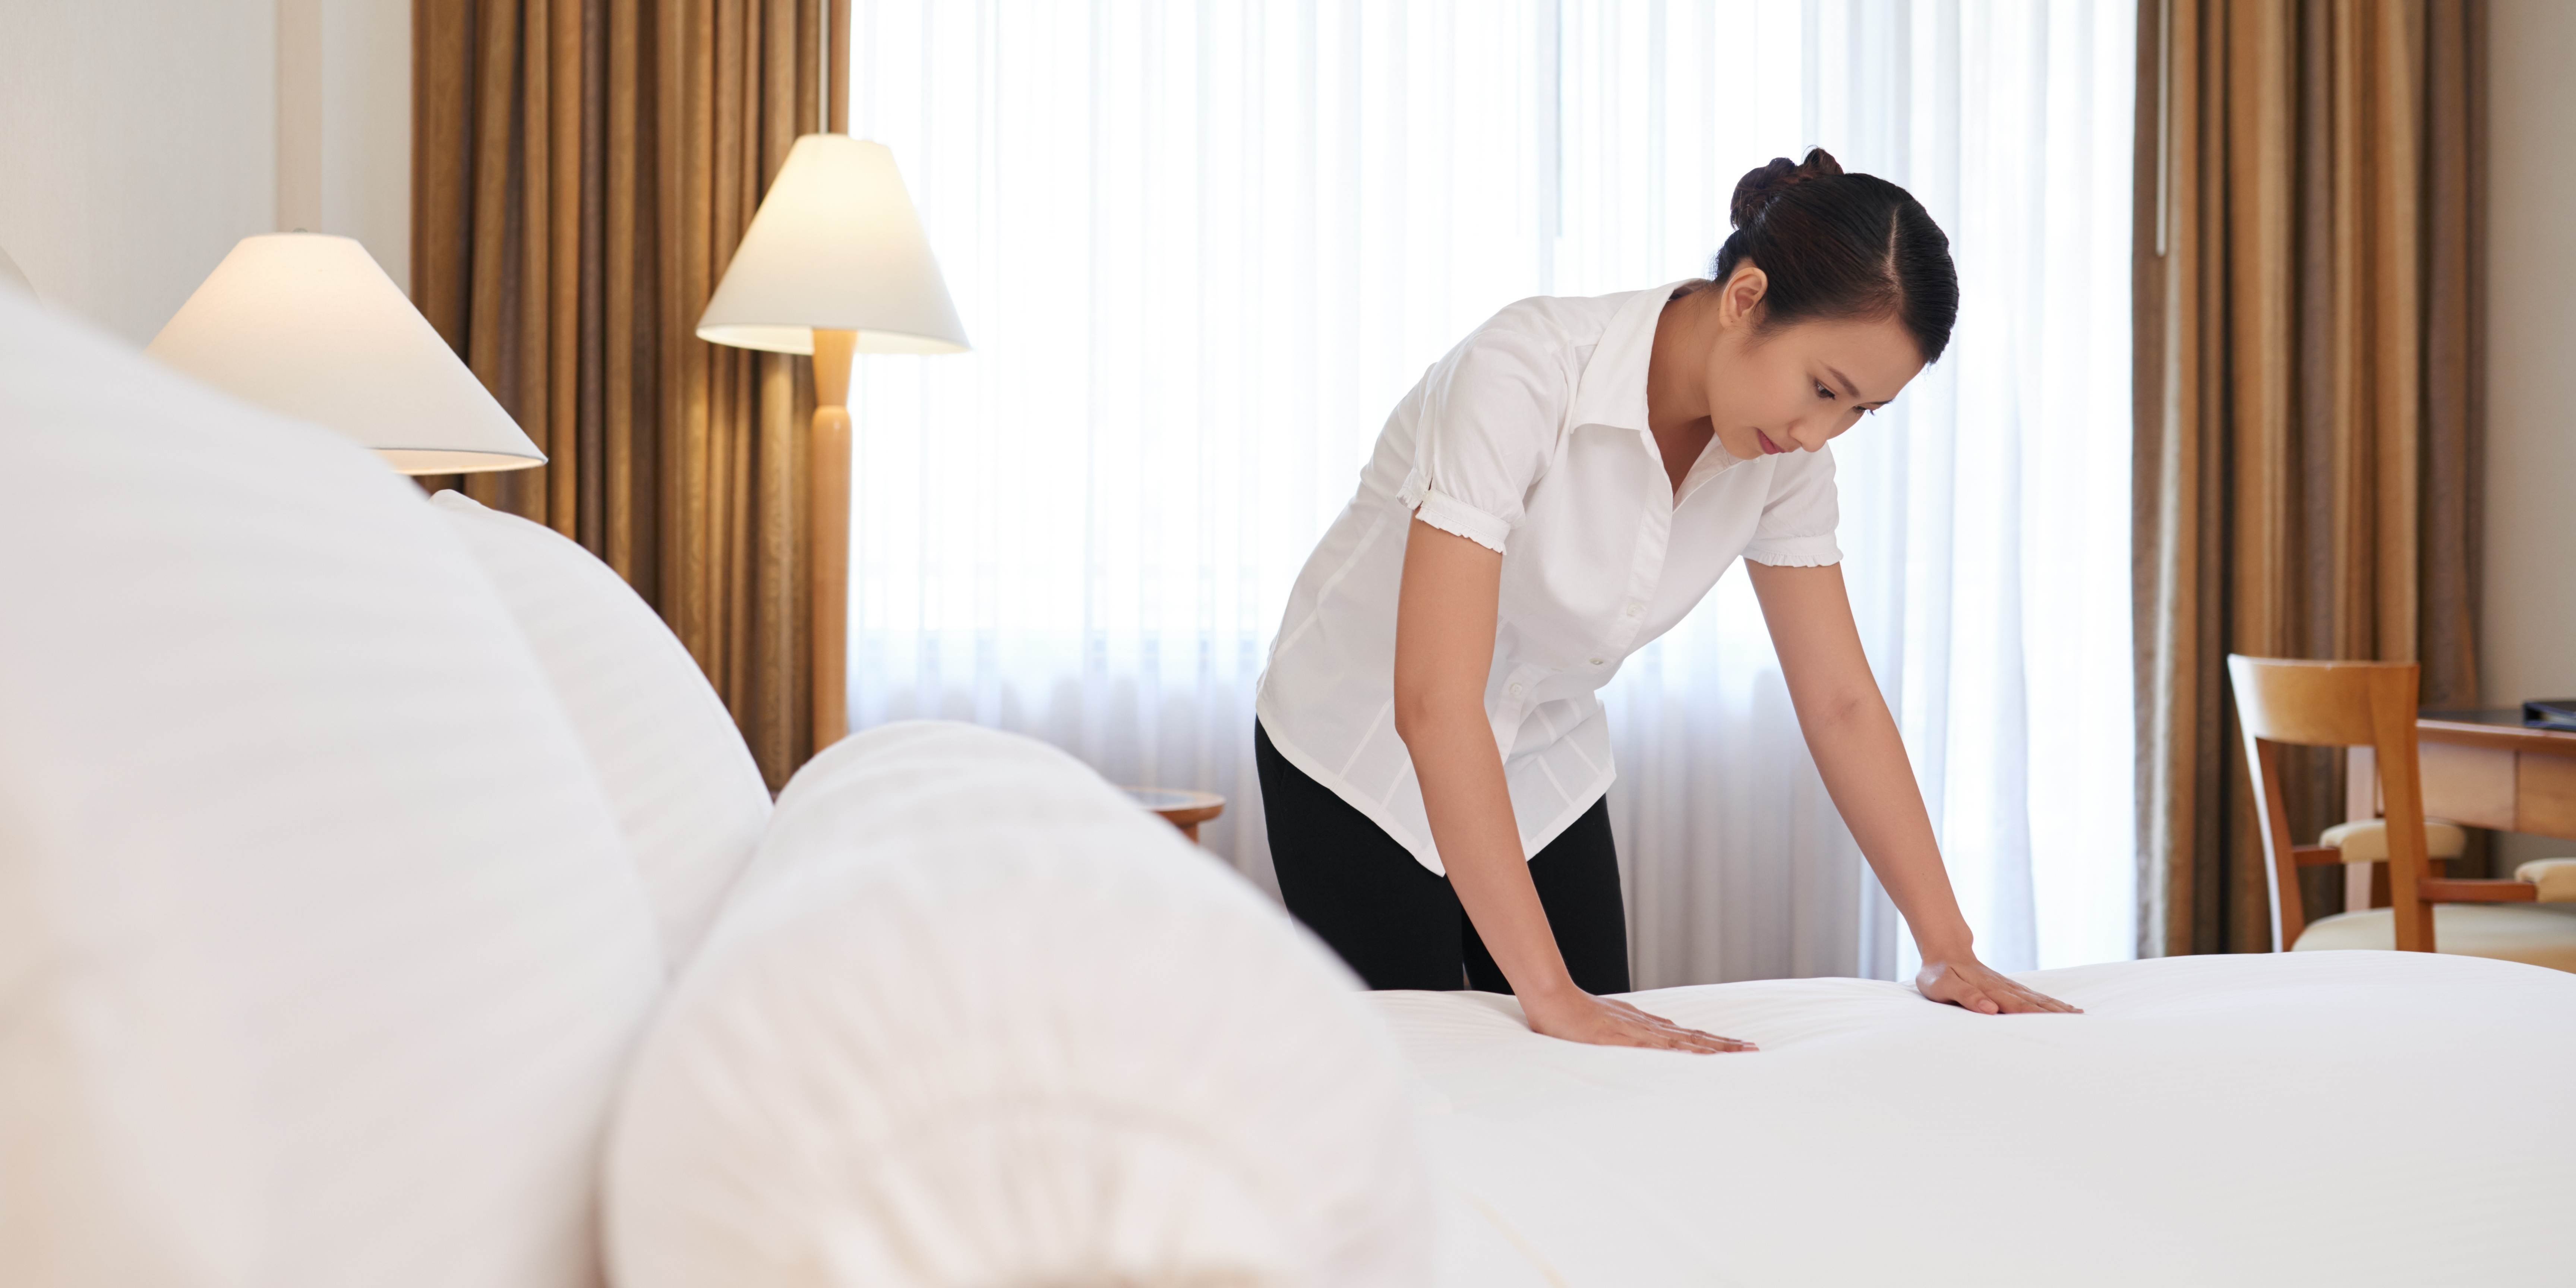 How Does Pest Management Support Singapore's Hospitality Industry?